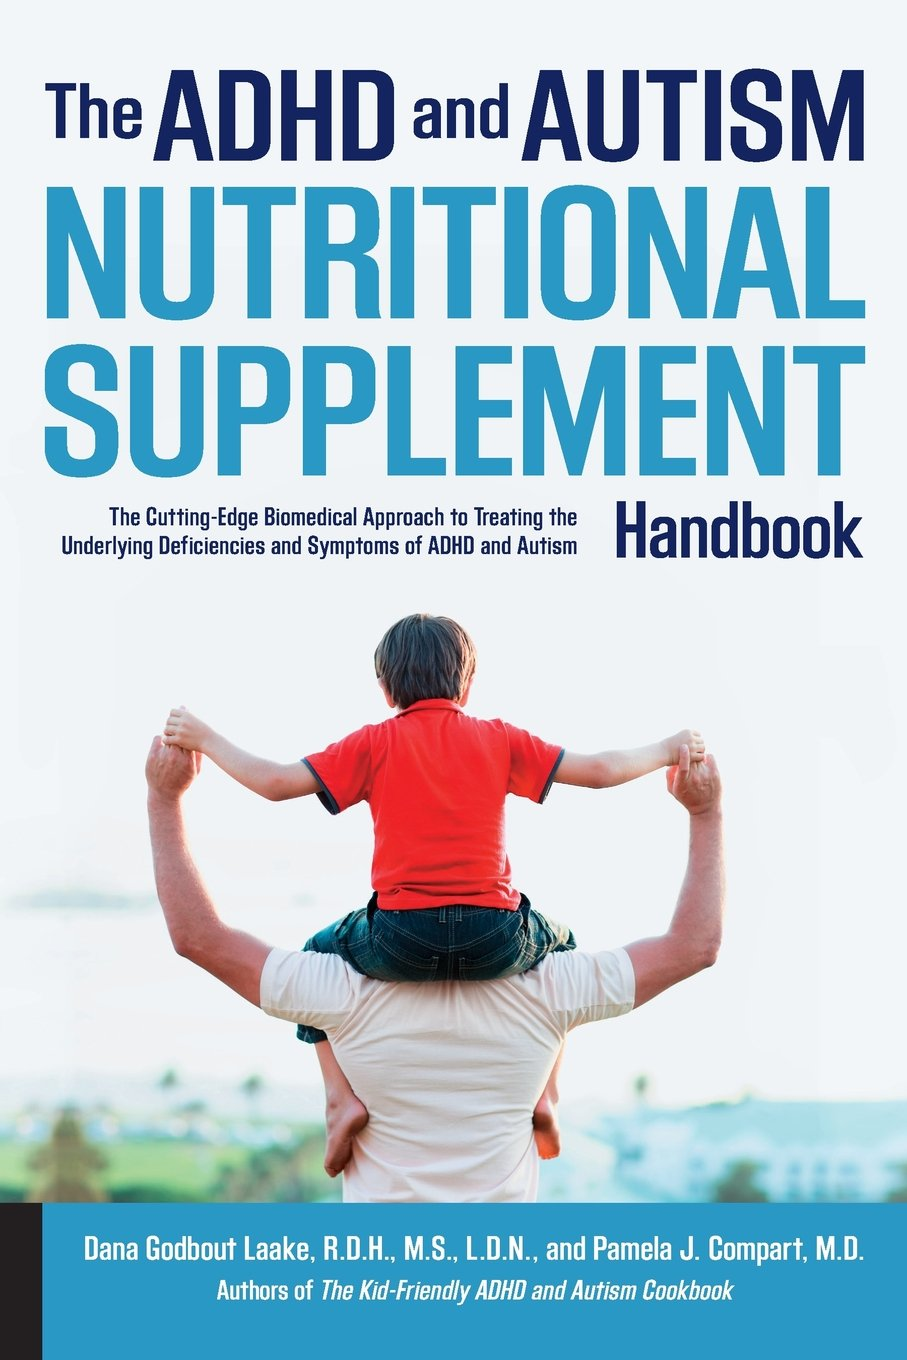 The ADHD and Autism Nutritional Supplement Handbook: The Cutting-Edge Biomedical Approach to Treating the Underlying Deficiencies and Symptoms of ADHD and Autism by Fair Winds Press